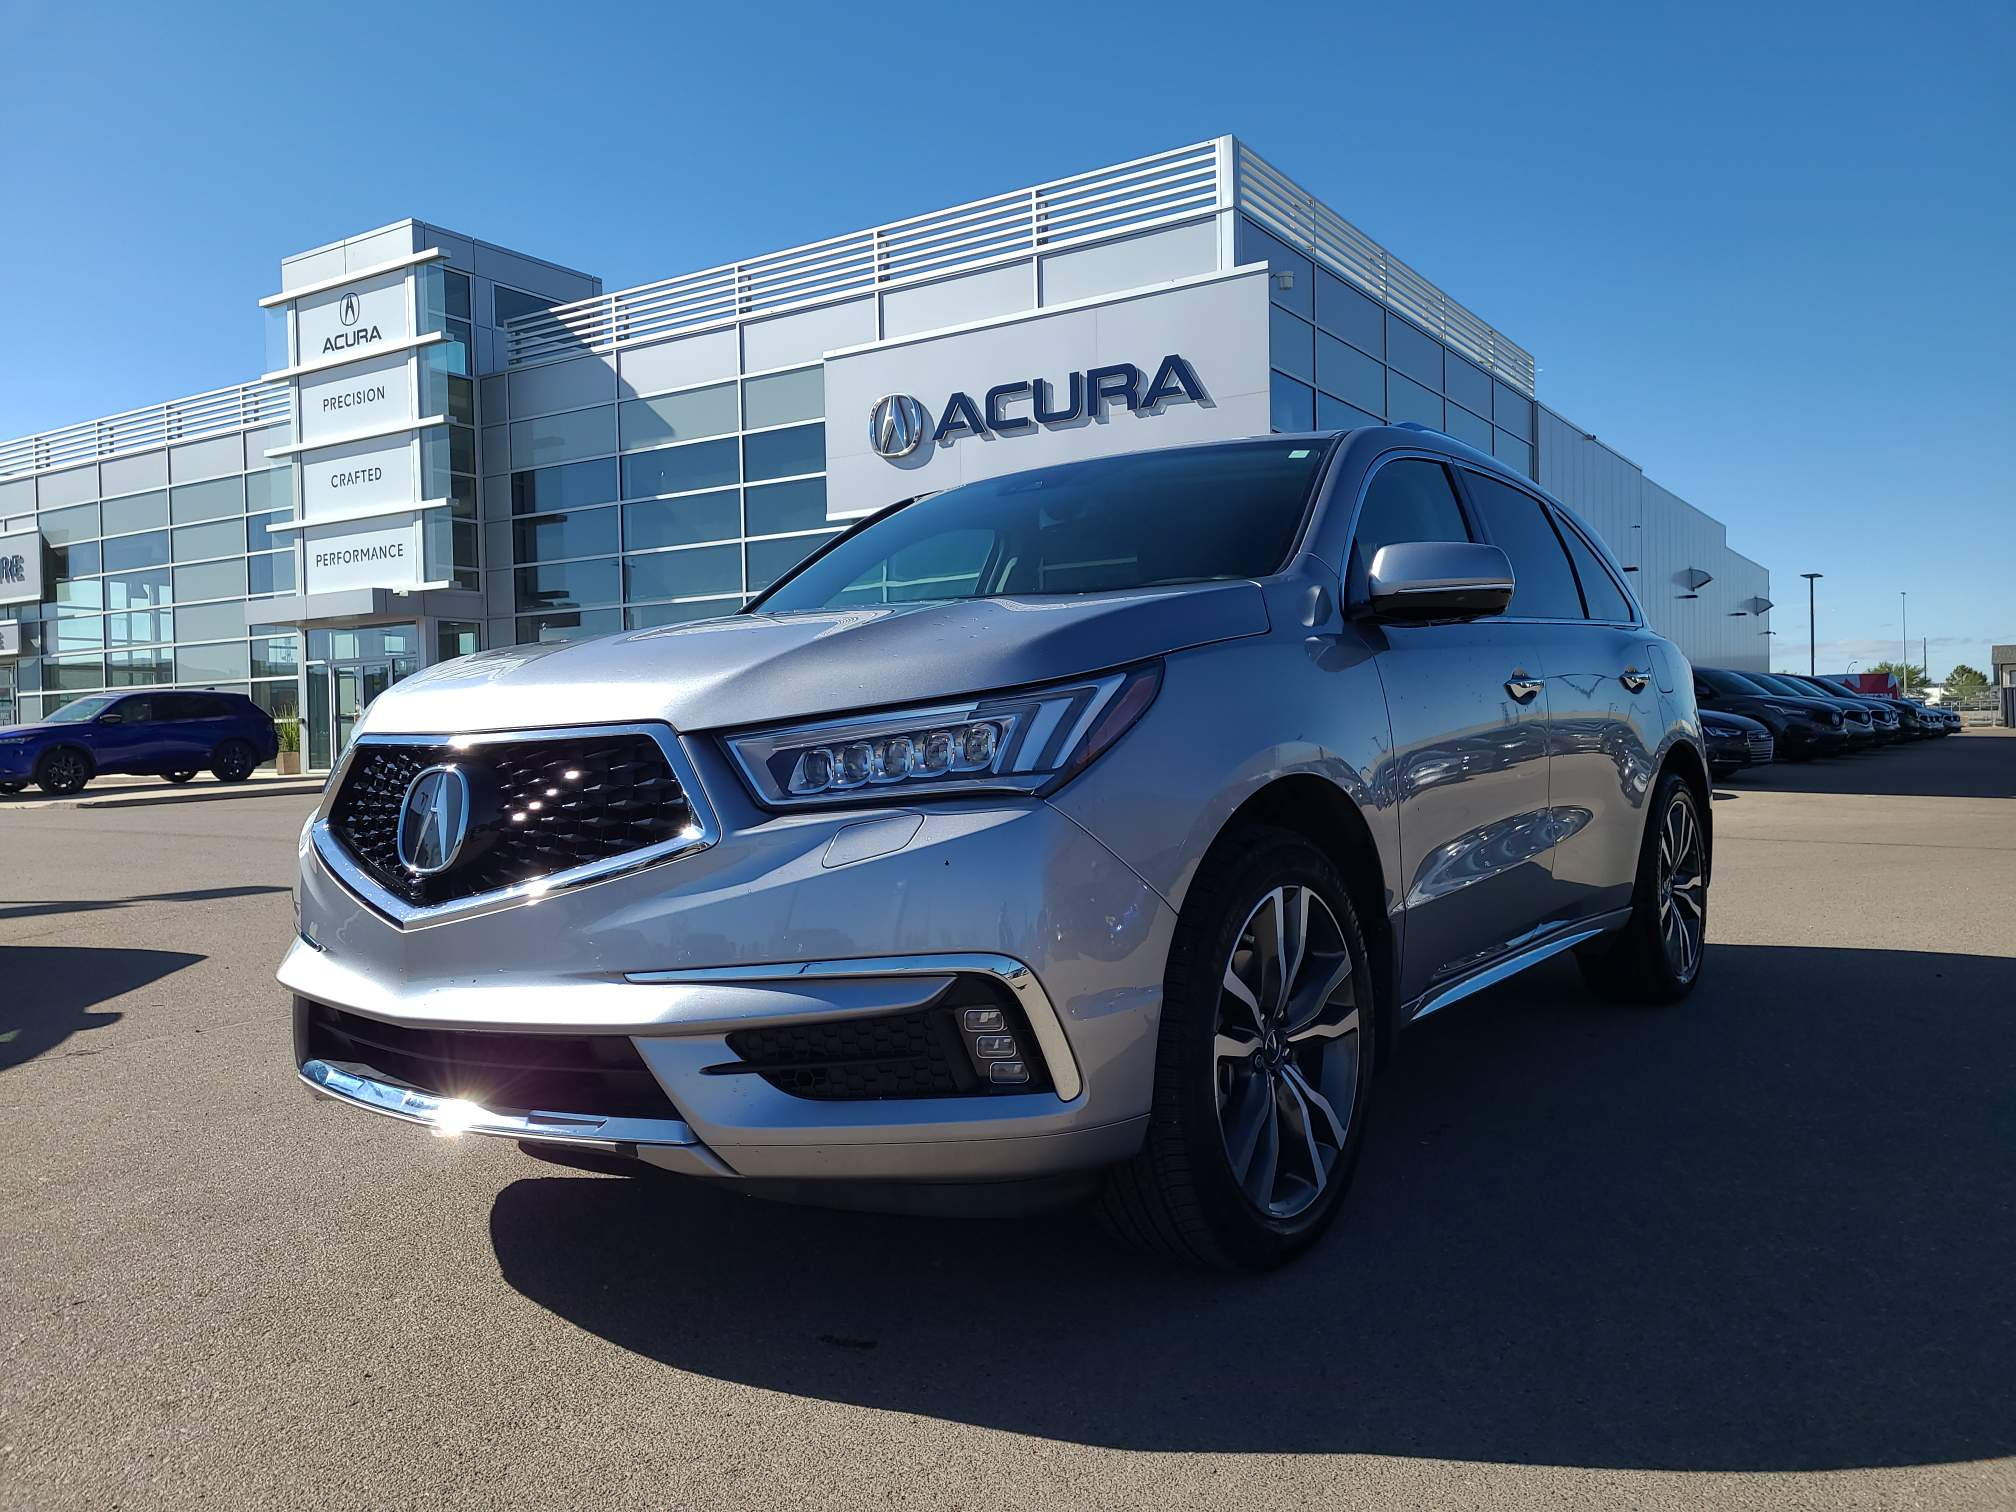 used 2020 Acura MDX car, priced at $51,696